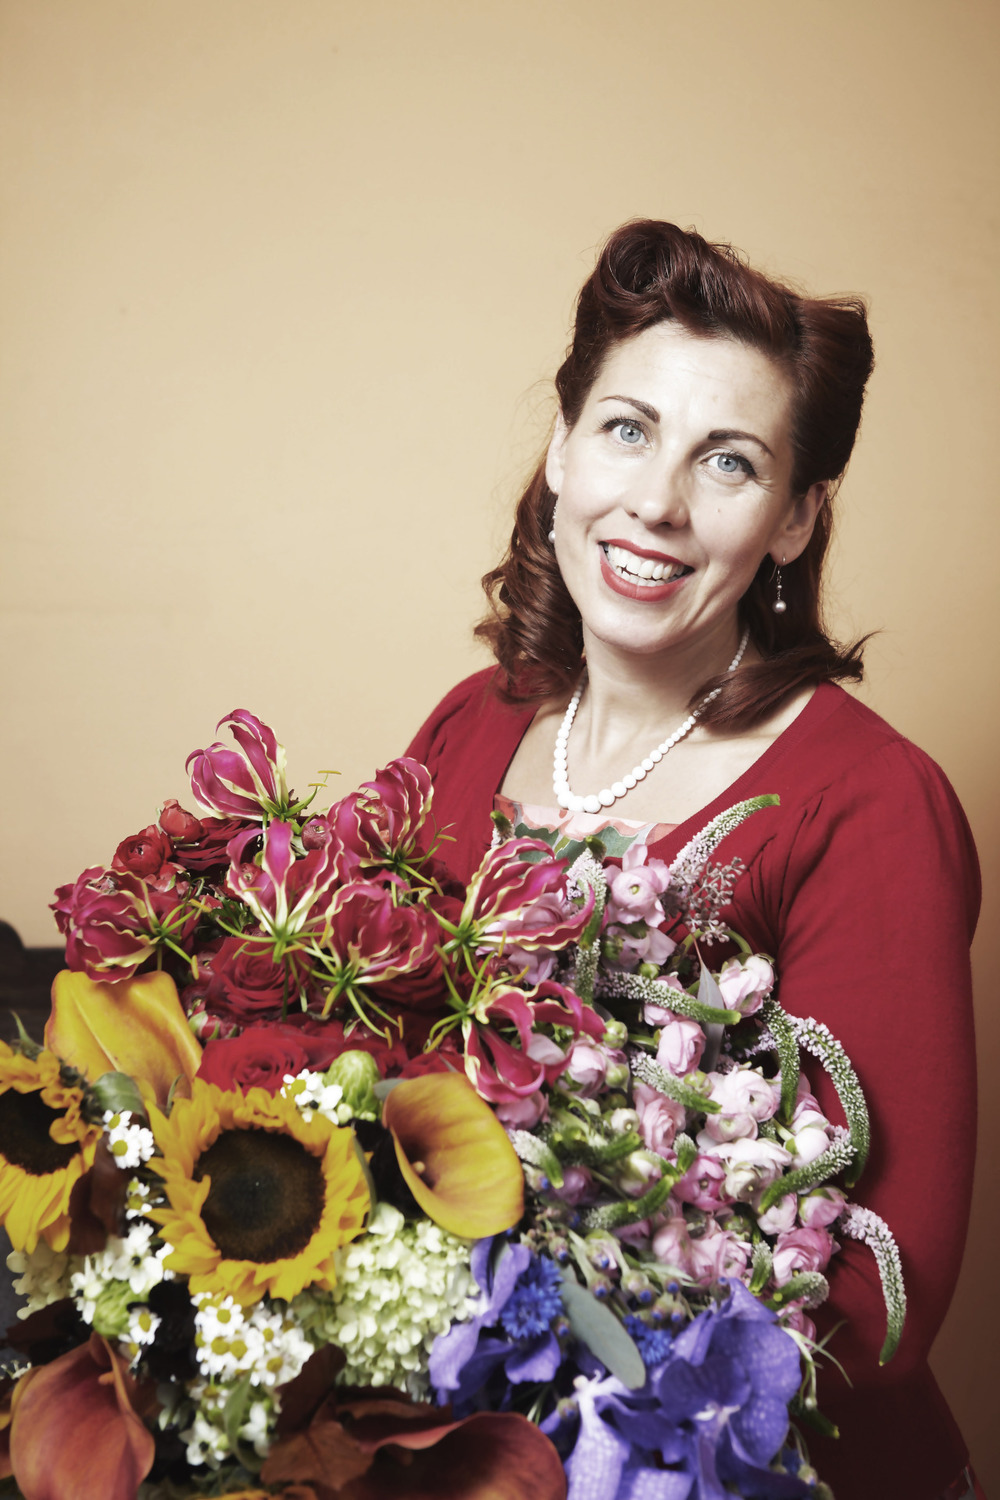 One from the archives. Photoshoot for flower company 'the wilde bunch' with a 50's pin up style for the brief